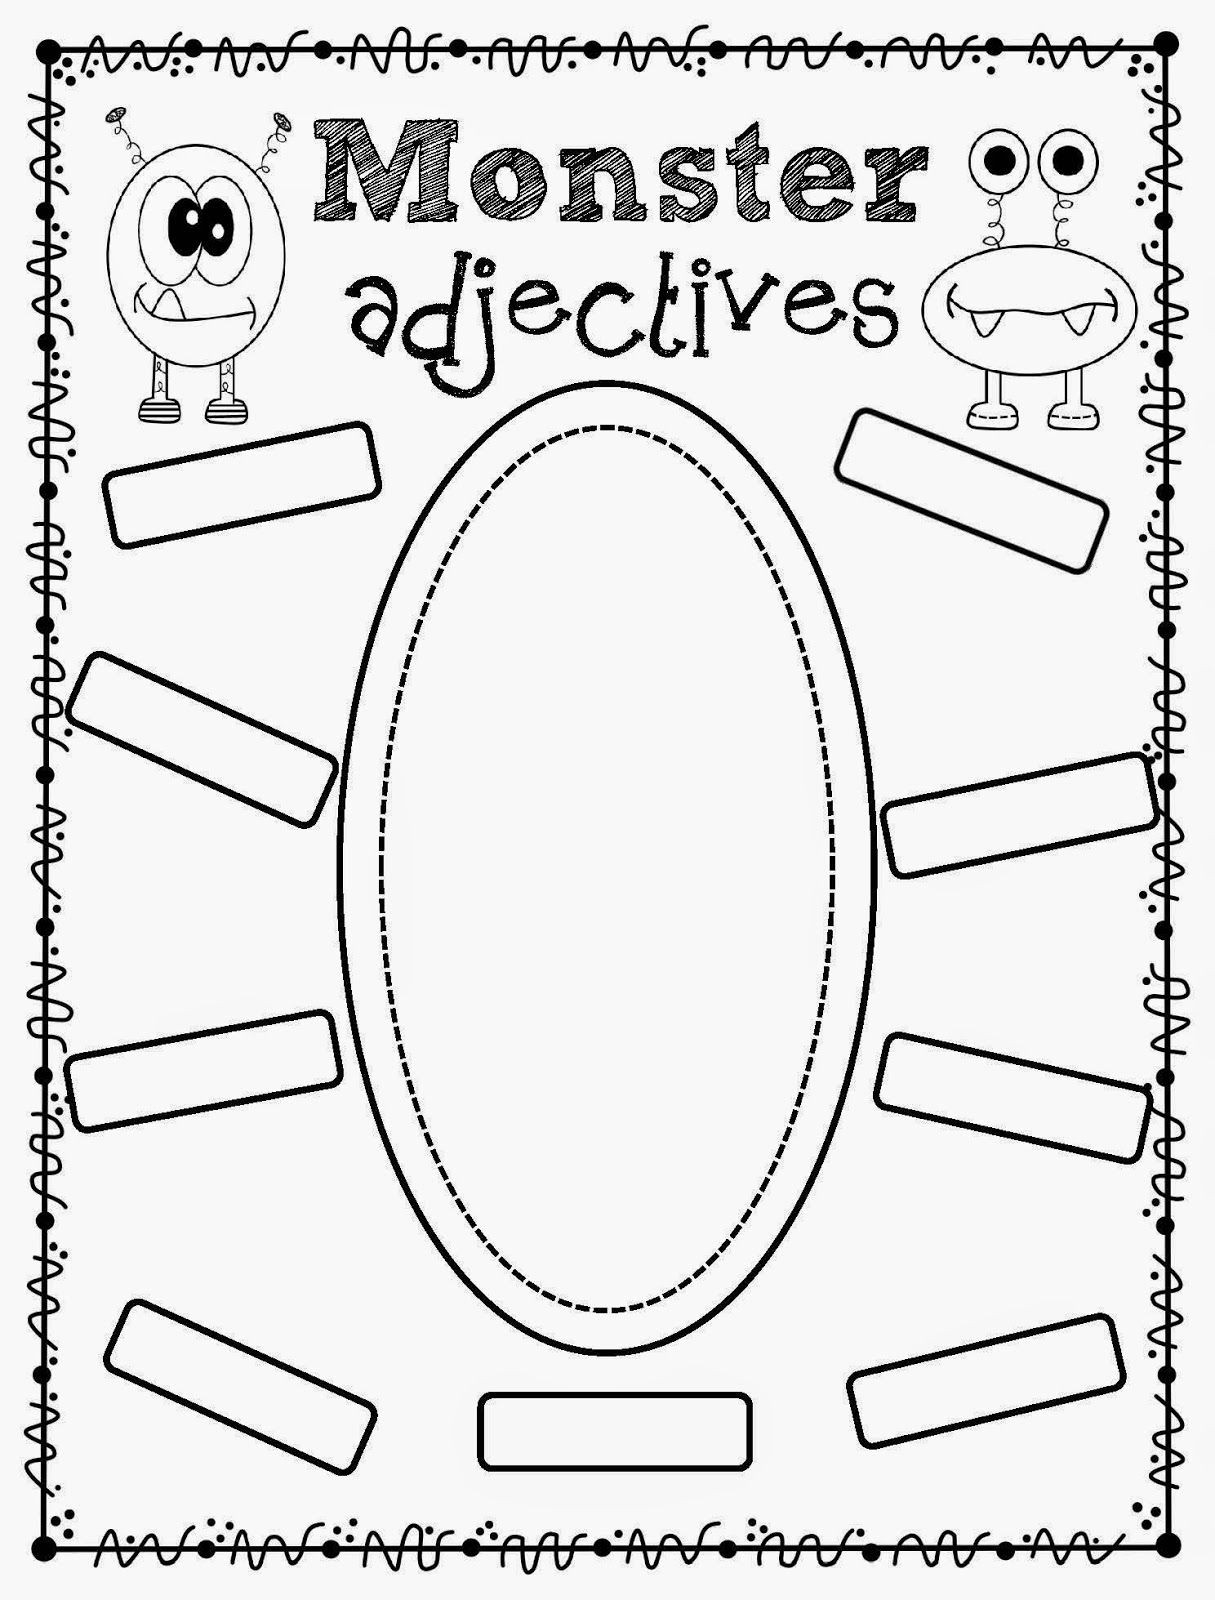 Adjective Worksheets 1st Grade Hiddenfashionhistory Thanksgiving Math Worksheets Algebra